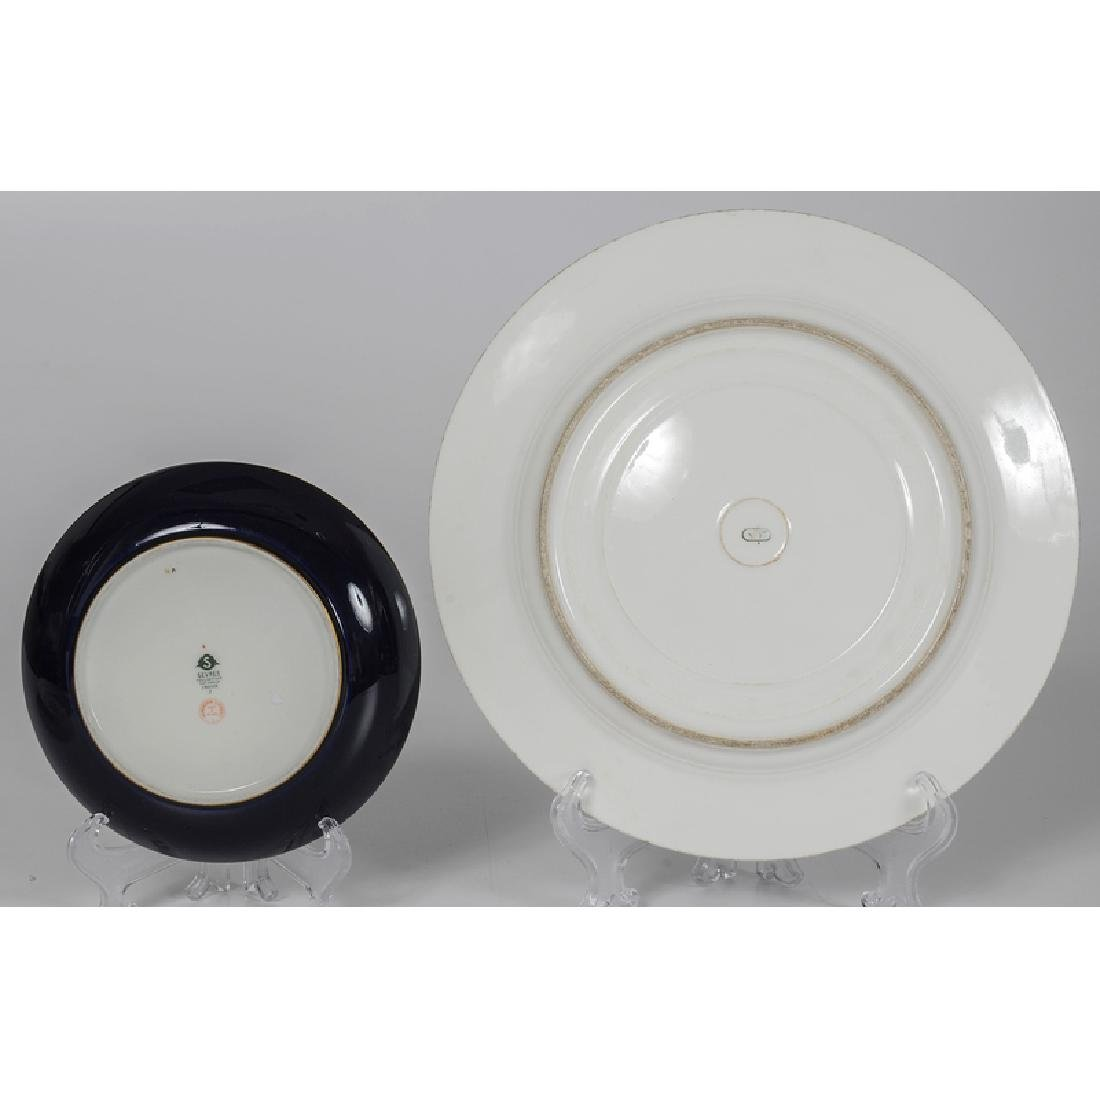 Sèvres Cup and Saucer, and Plates - 2